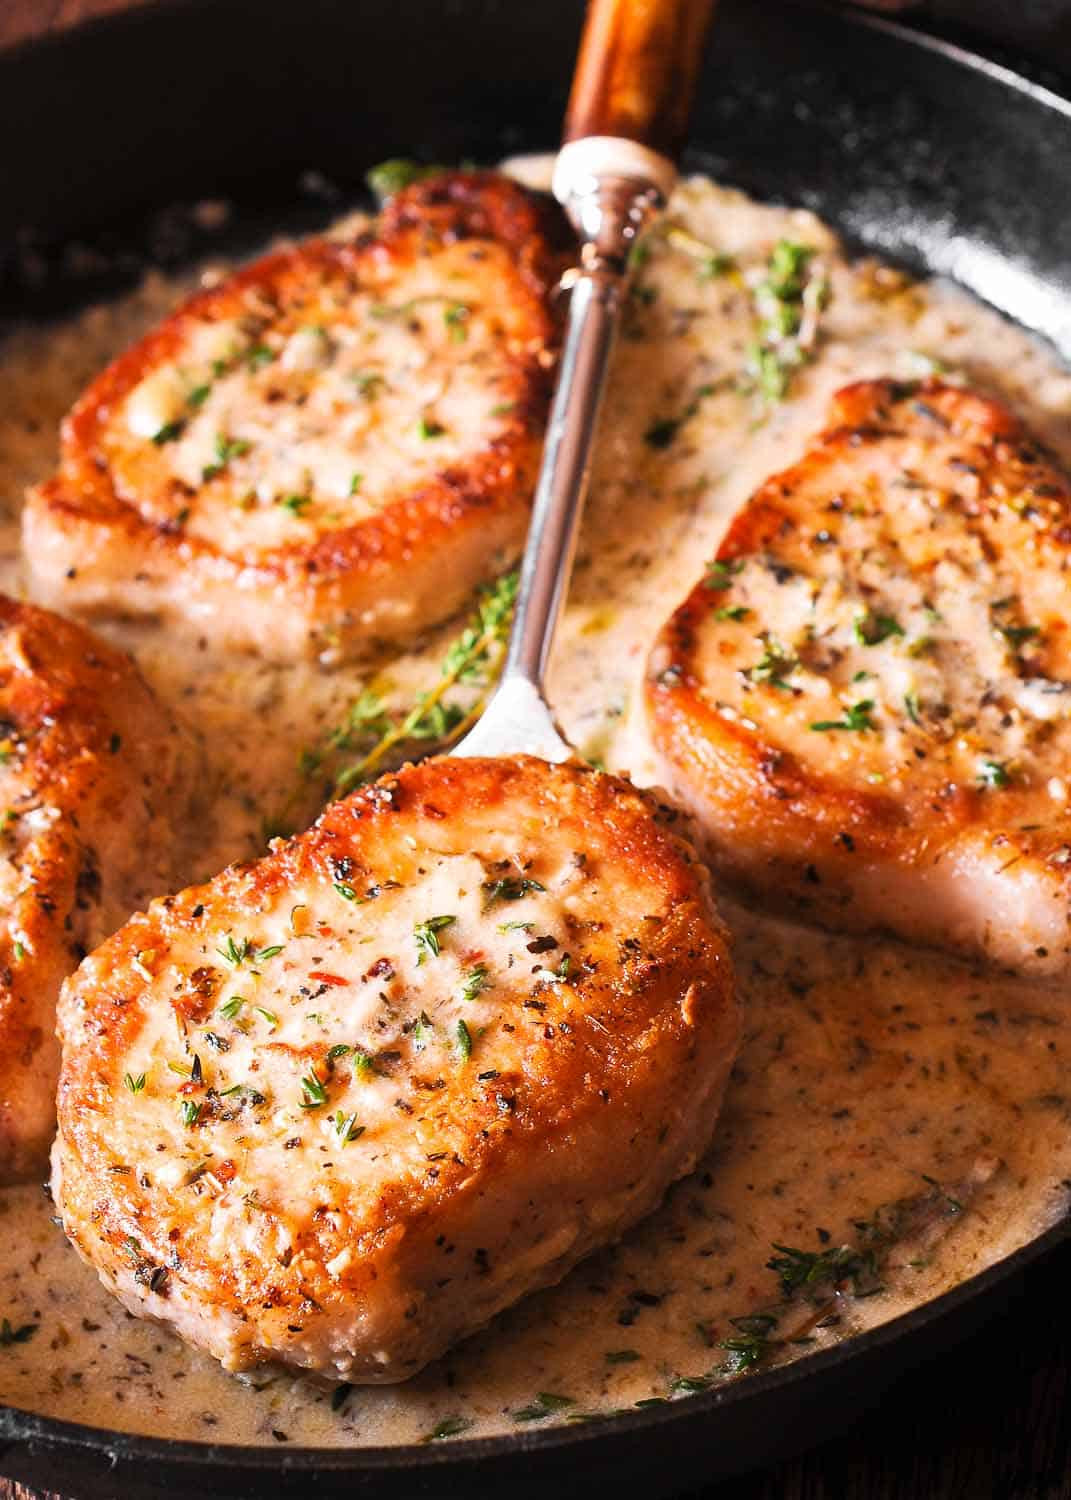 Cooking Pork Chops  Boneless Pork Chops in Creamy Garlic and Herb Wine Sauce